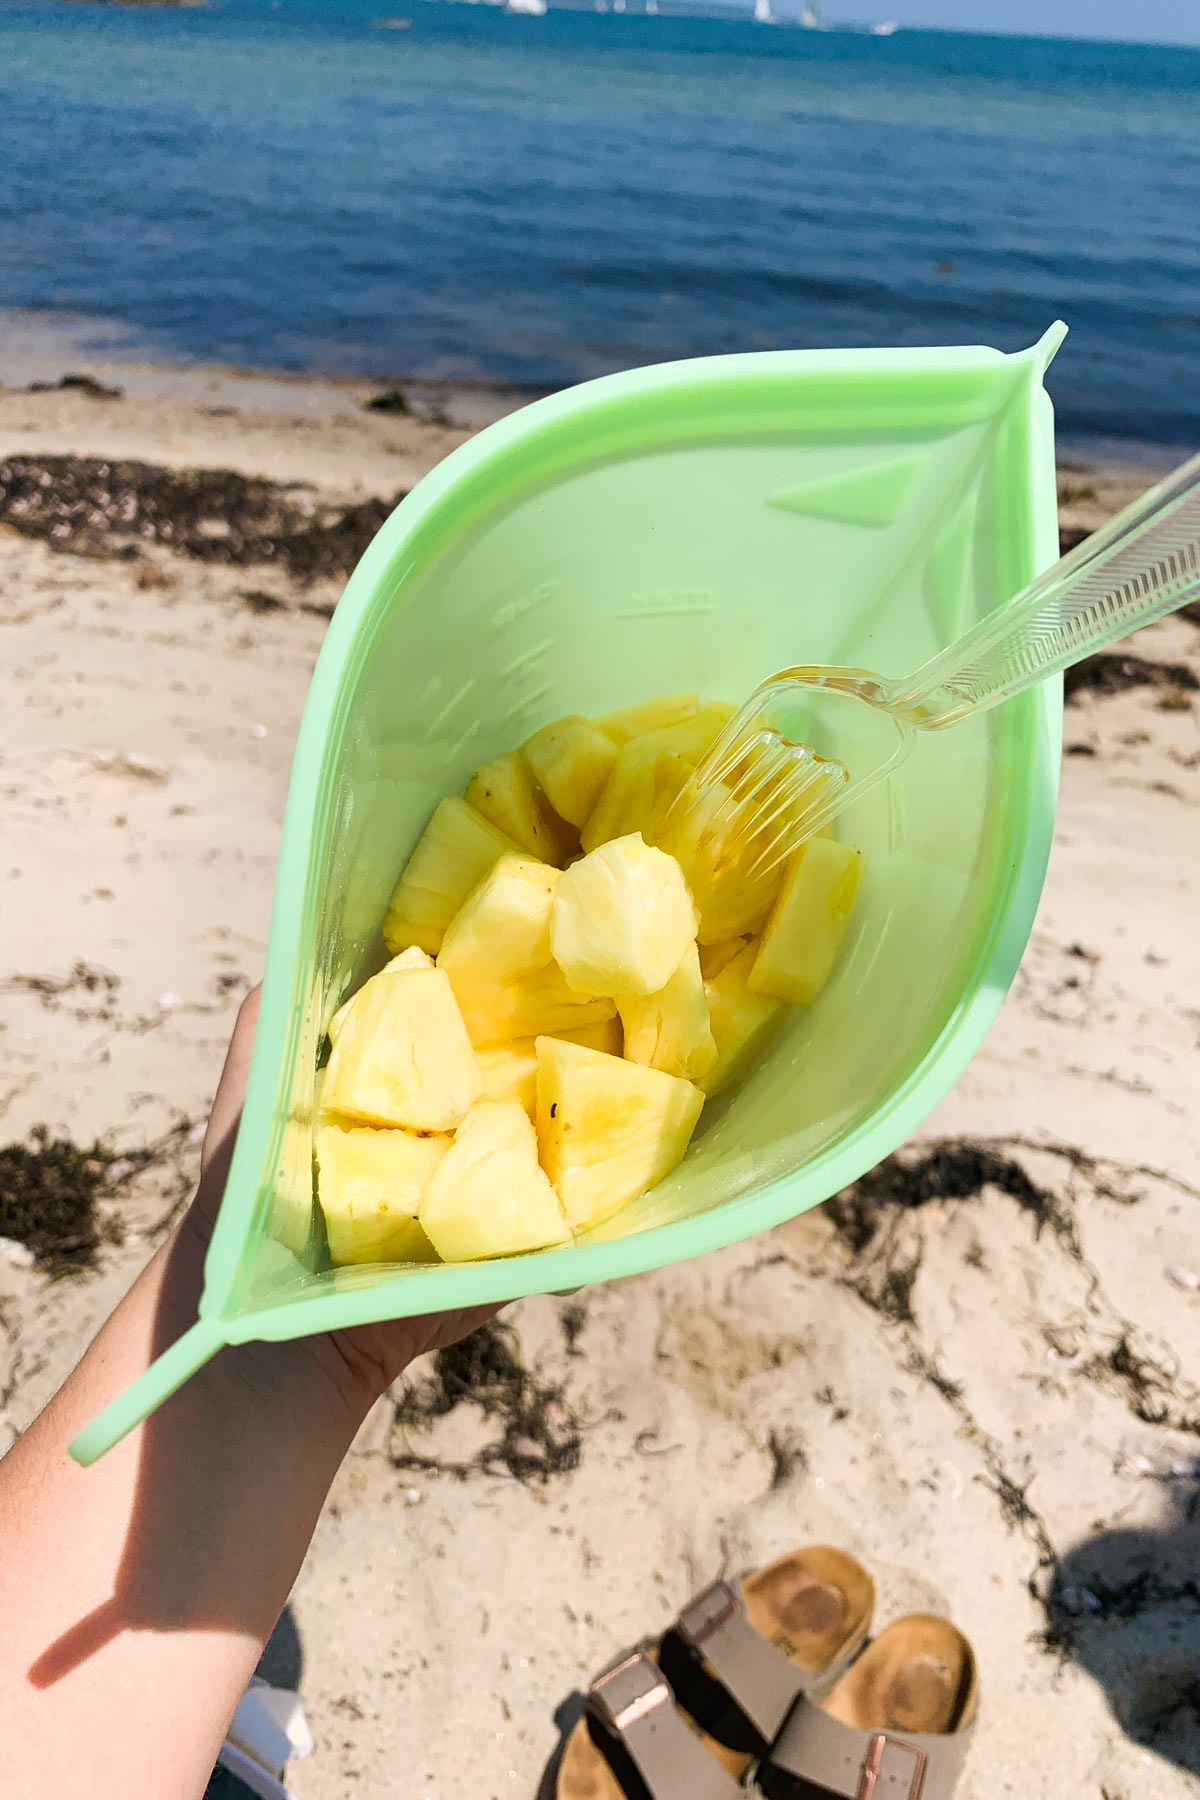 pineapple in a bag on the beach